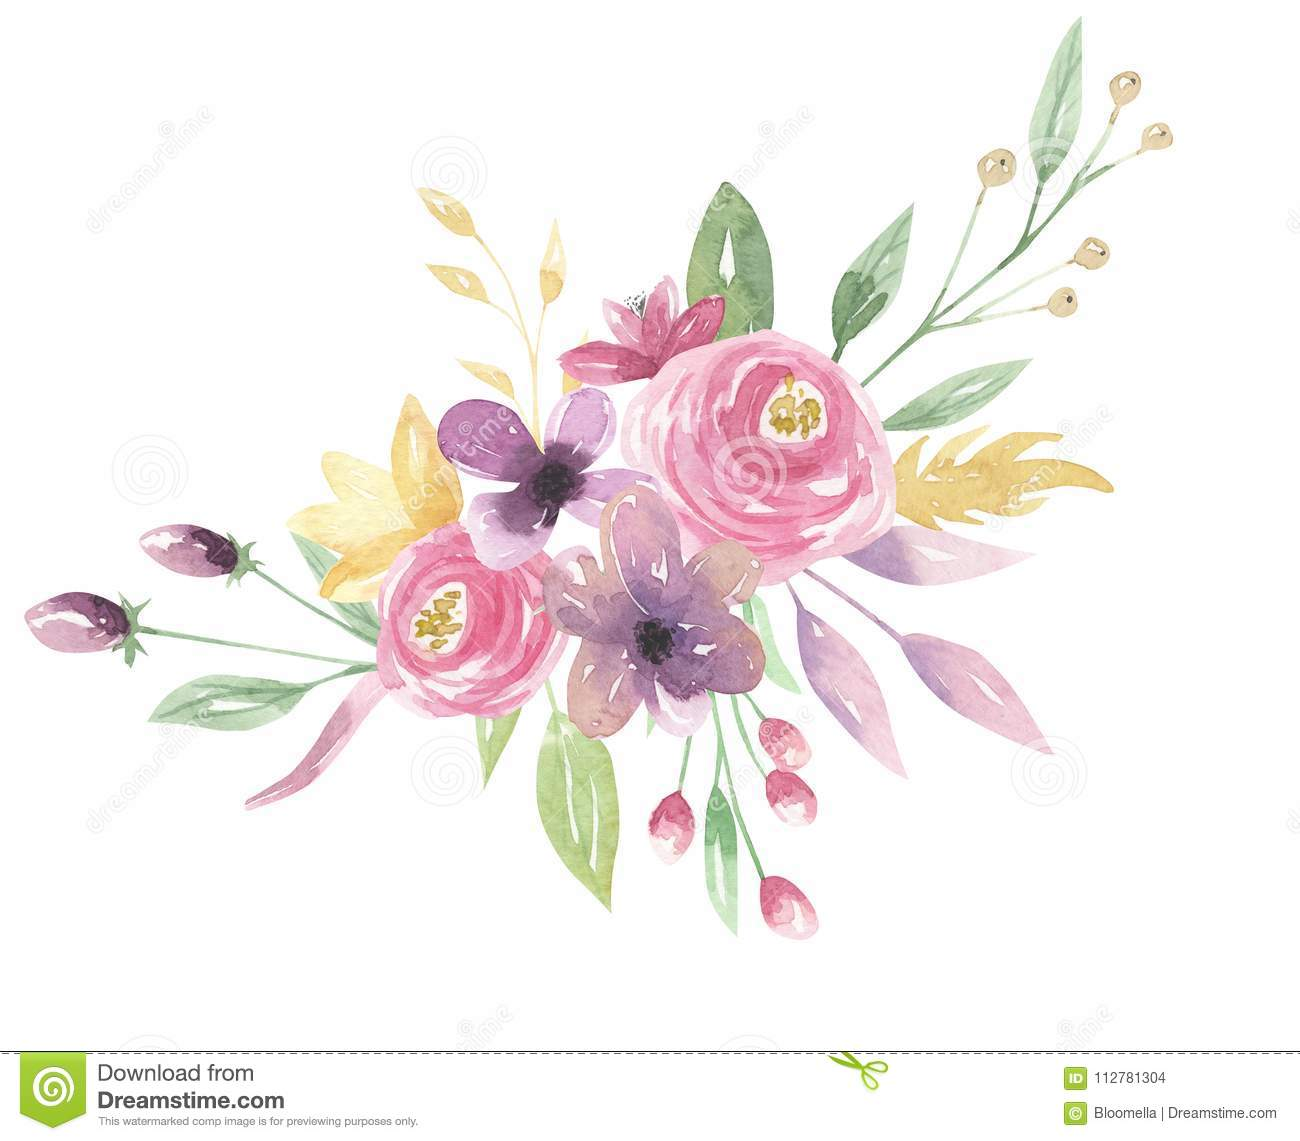 Watercolor floral pink bouquet berries purple flowers leaves green watercolor floral pink bouquet berries purple flowers leaves green arrangement created leaf izmirmasajfo